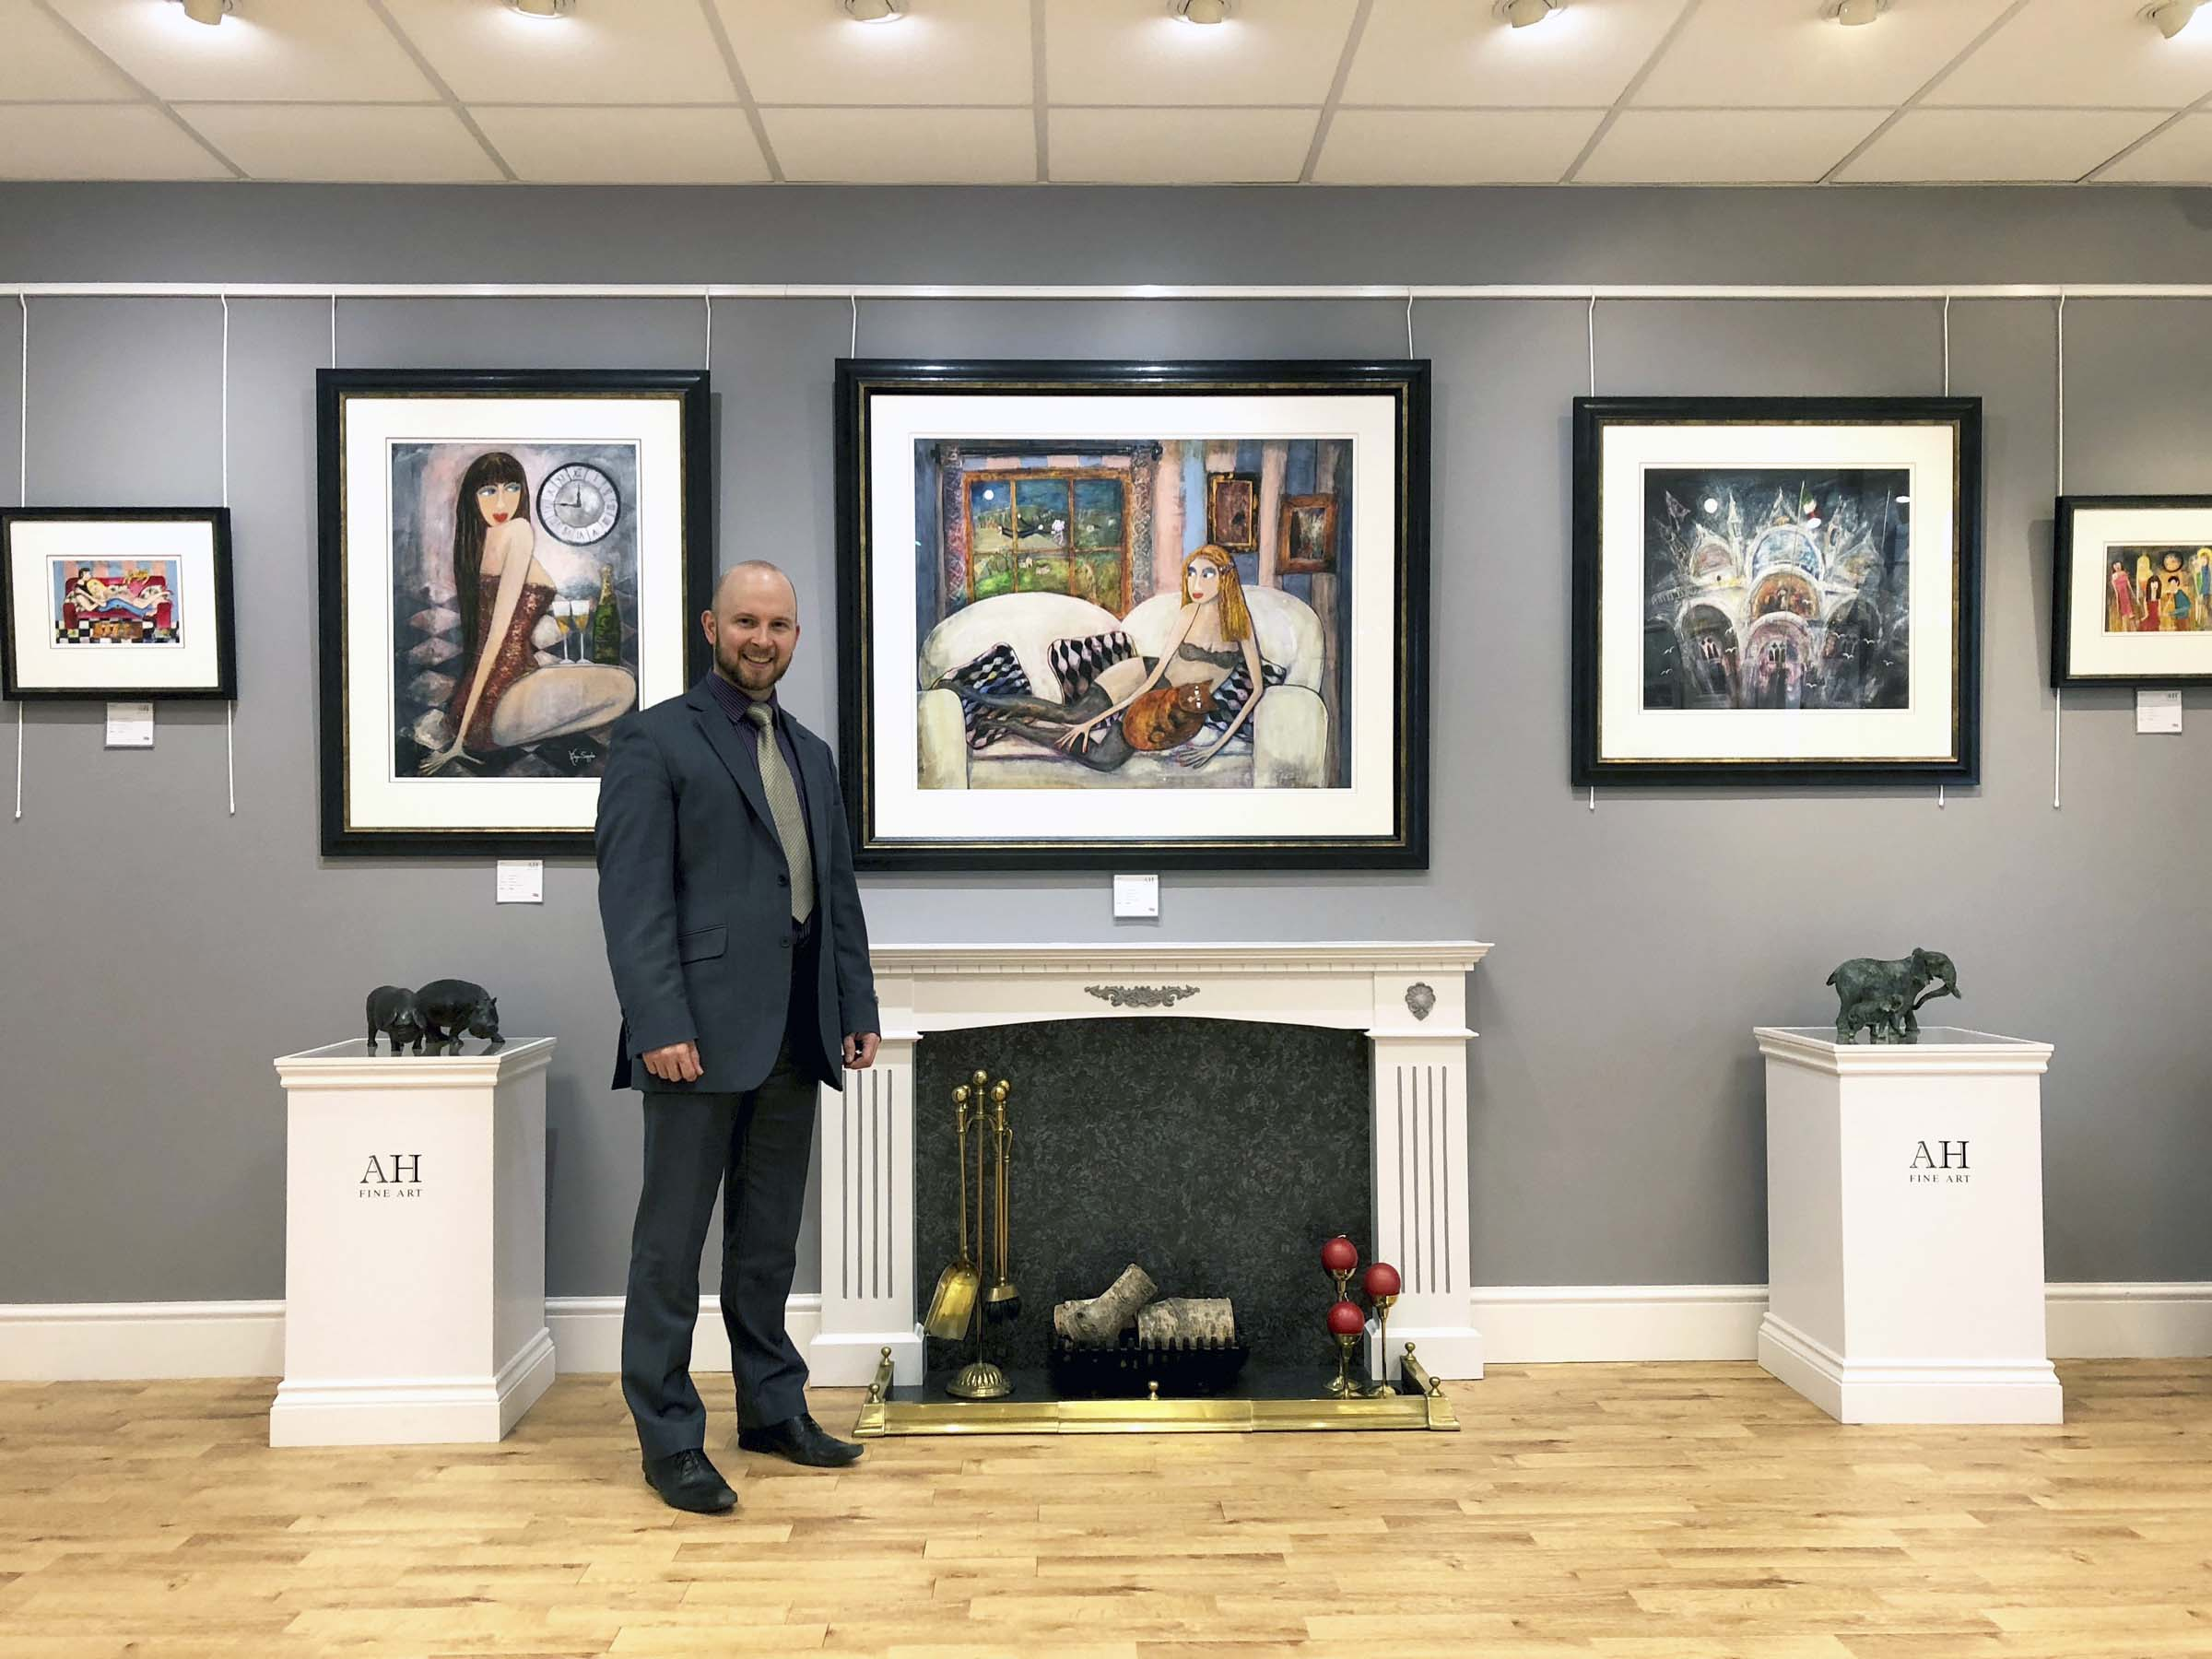 Gallery owner Adrian Hill